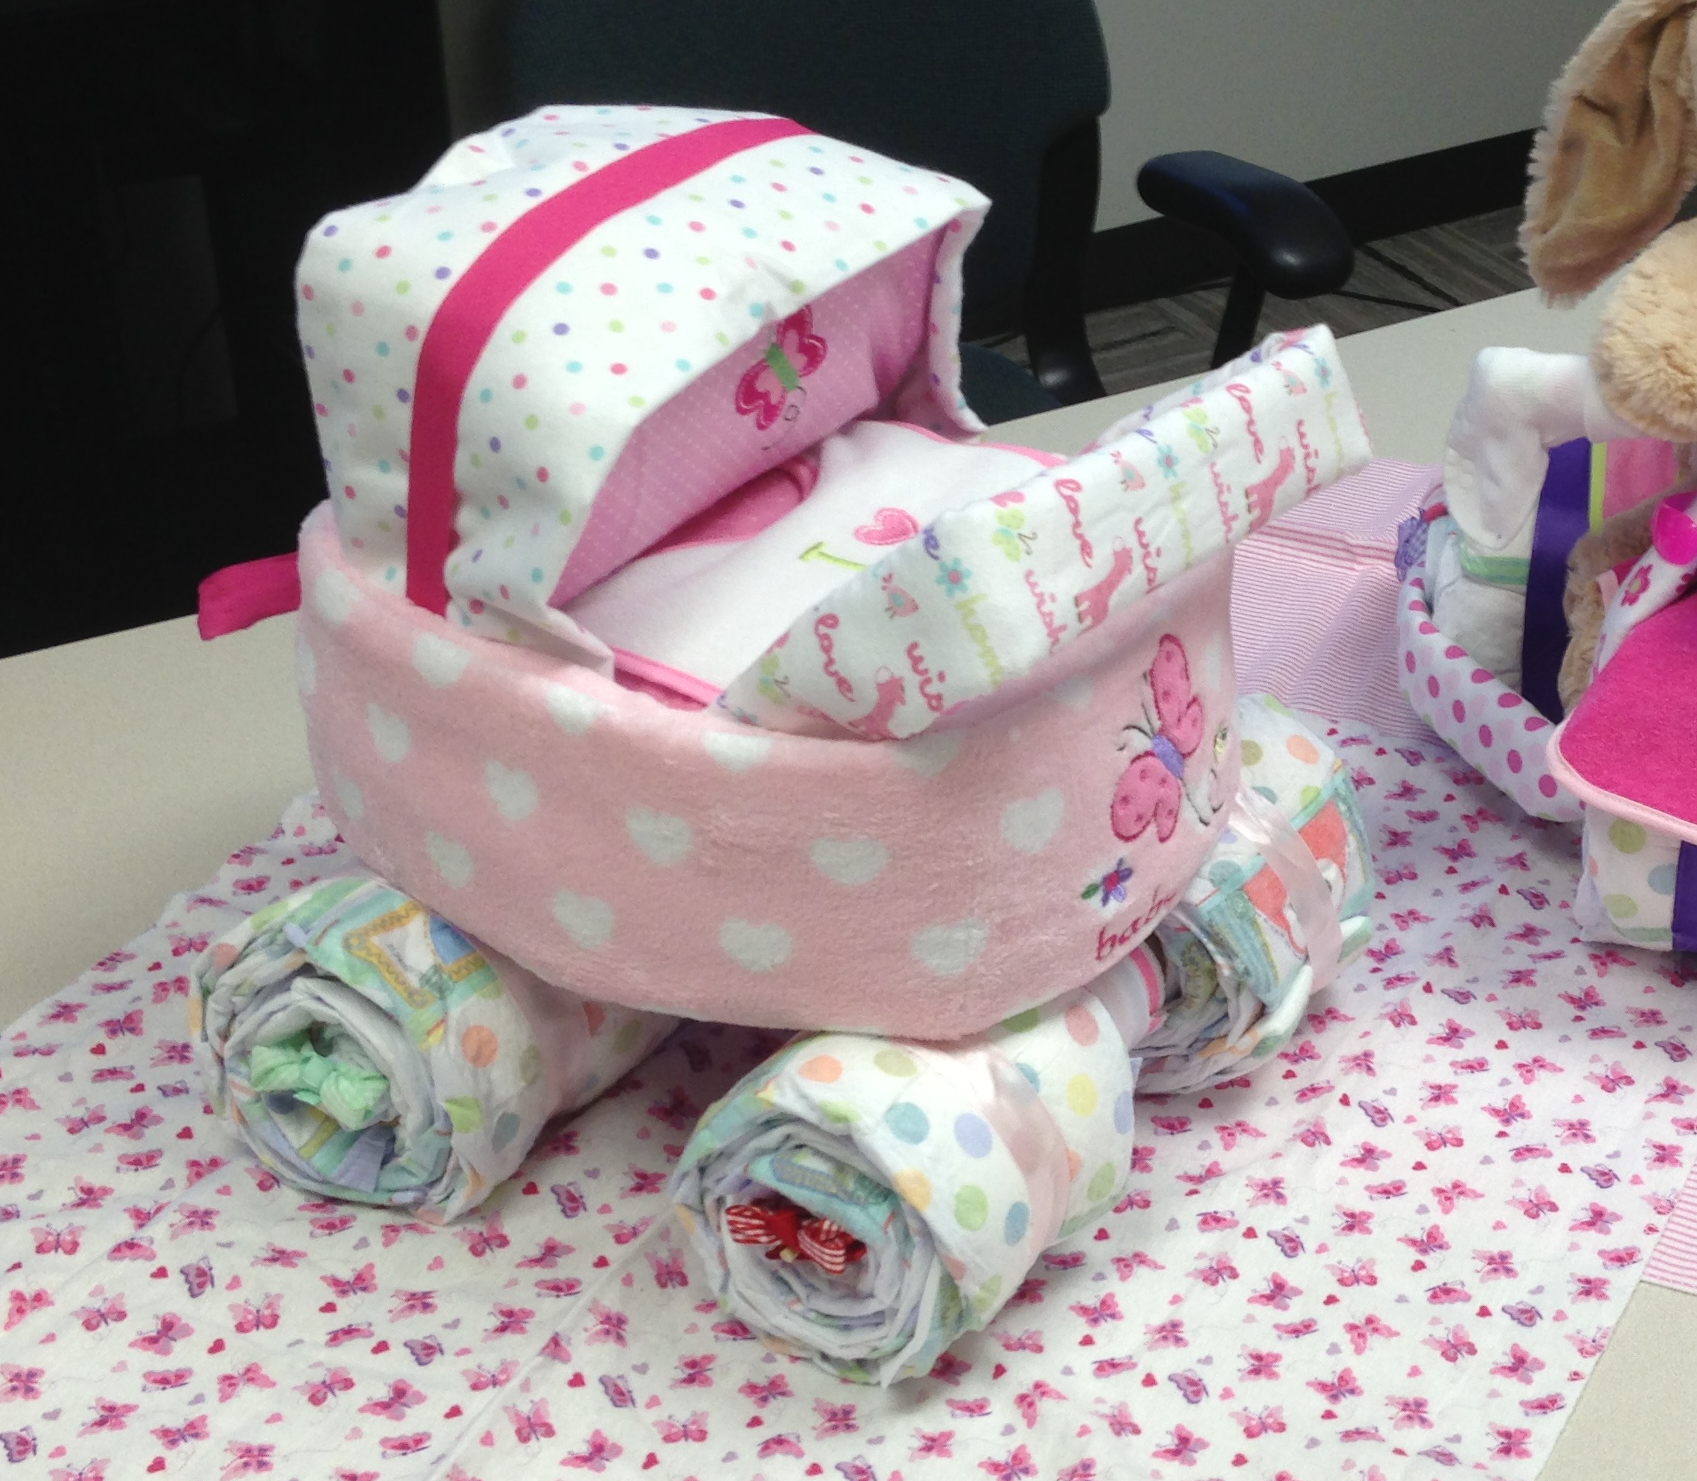 Things To Do With Diapers For A Baby Shower: Stroller. I Sure Hope I Get A